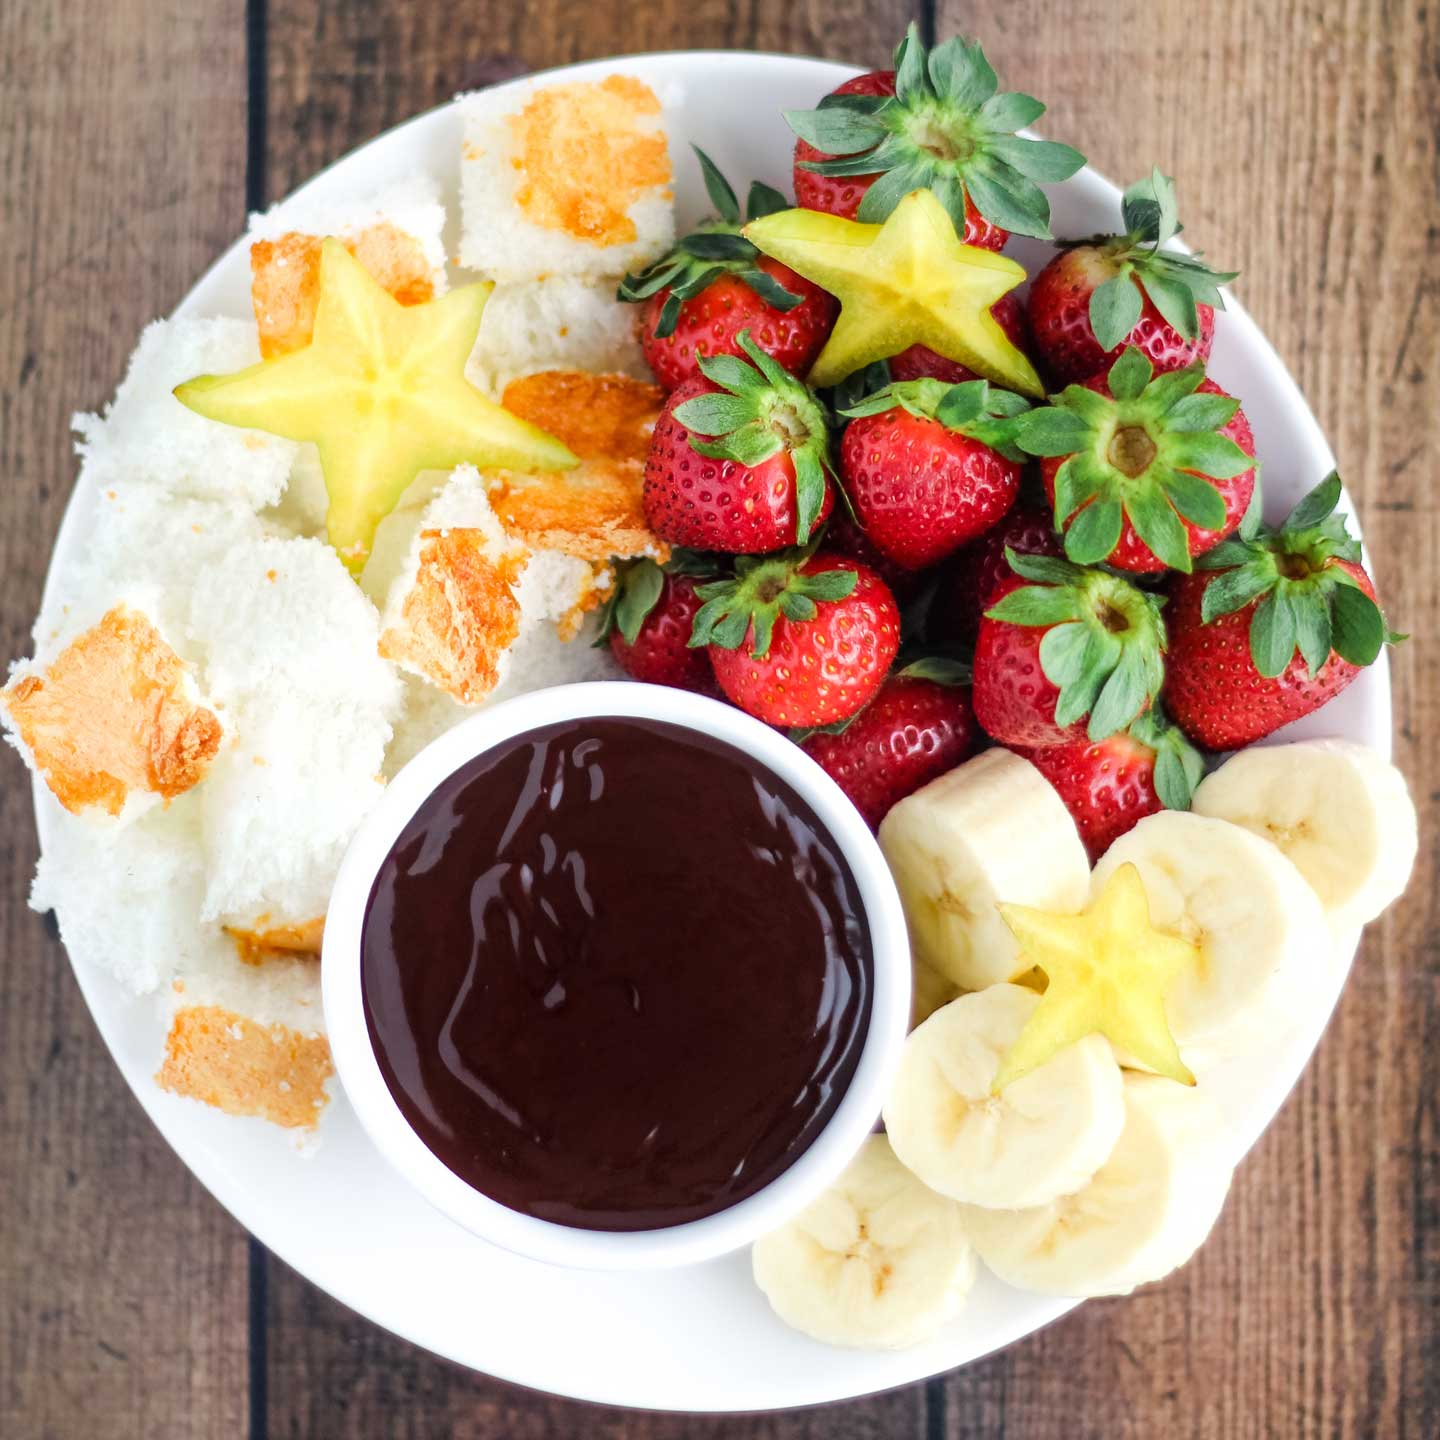 overhead of a fruit platter with strawberries, sliced bananas, chunks of angel food cake, and sliced star fruit, with a bowl of Chocolate Dip nestled in